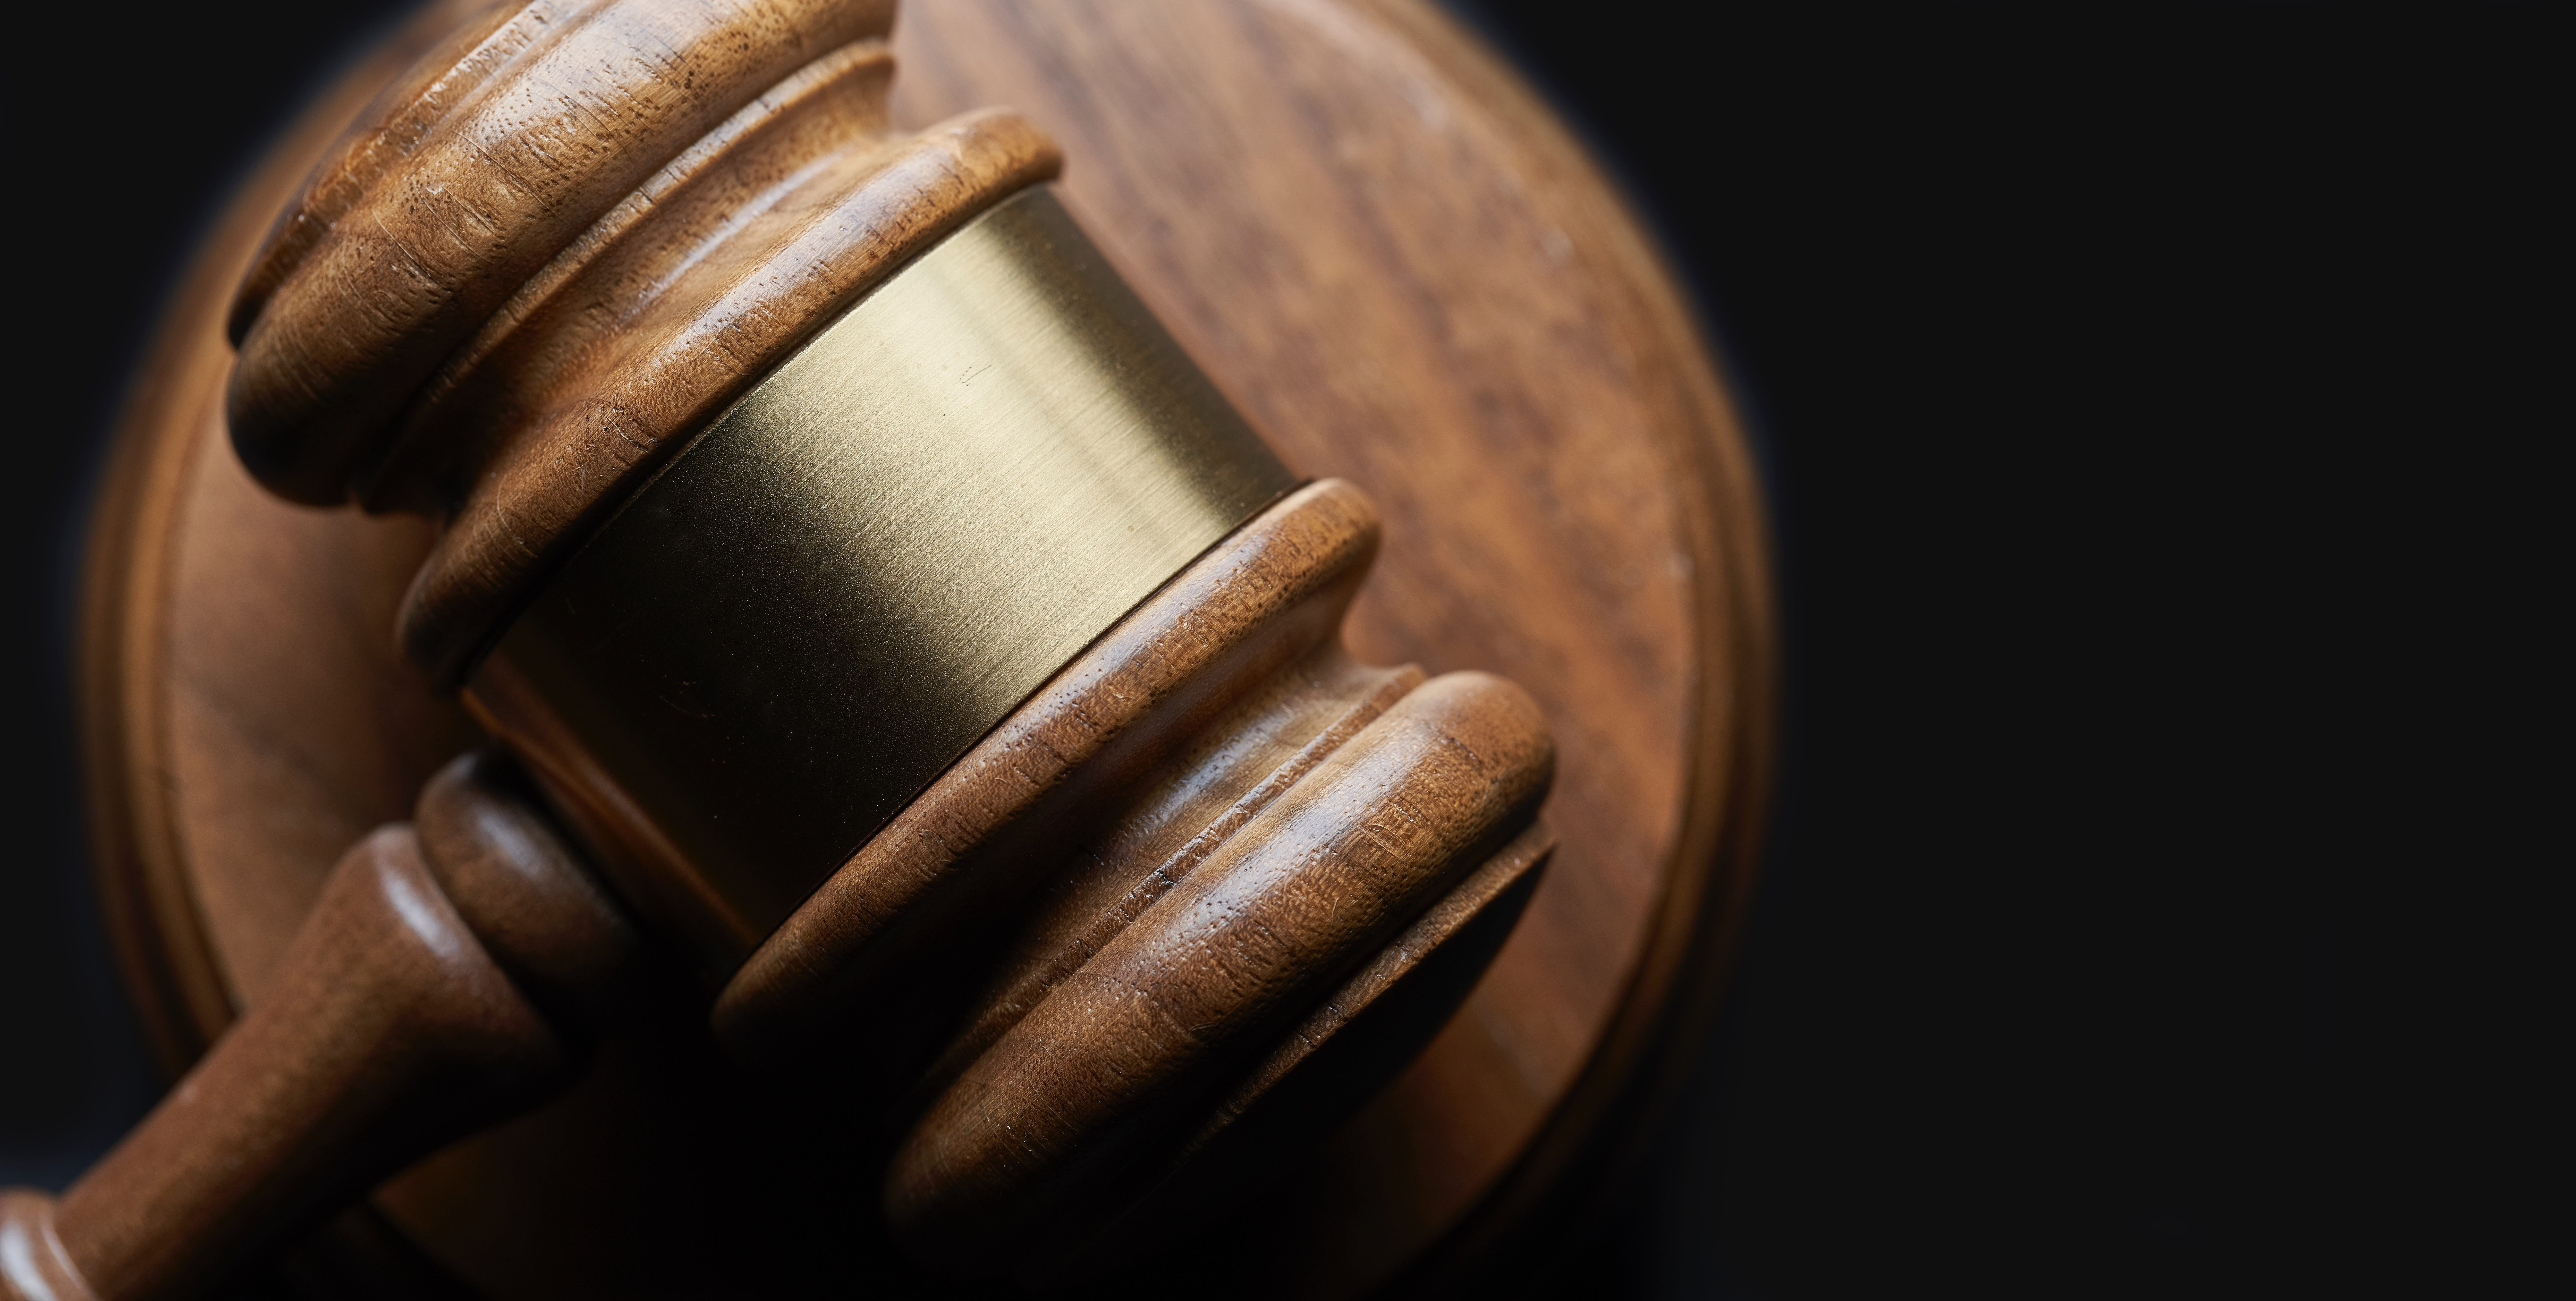 Brown and gold gavel; image by Bill Oxford, via Unsplash.com.